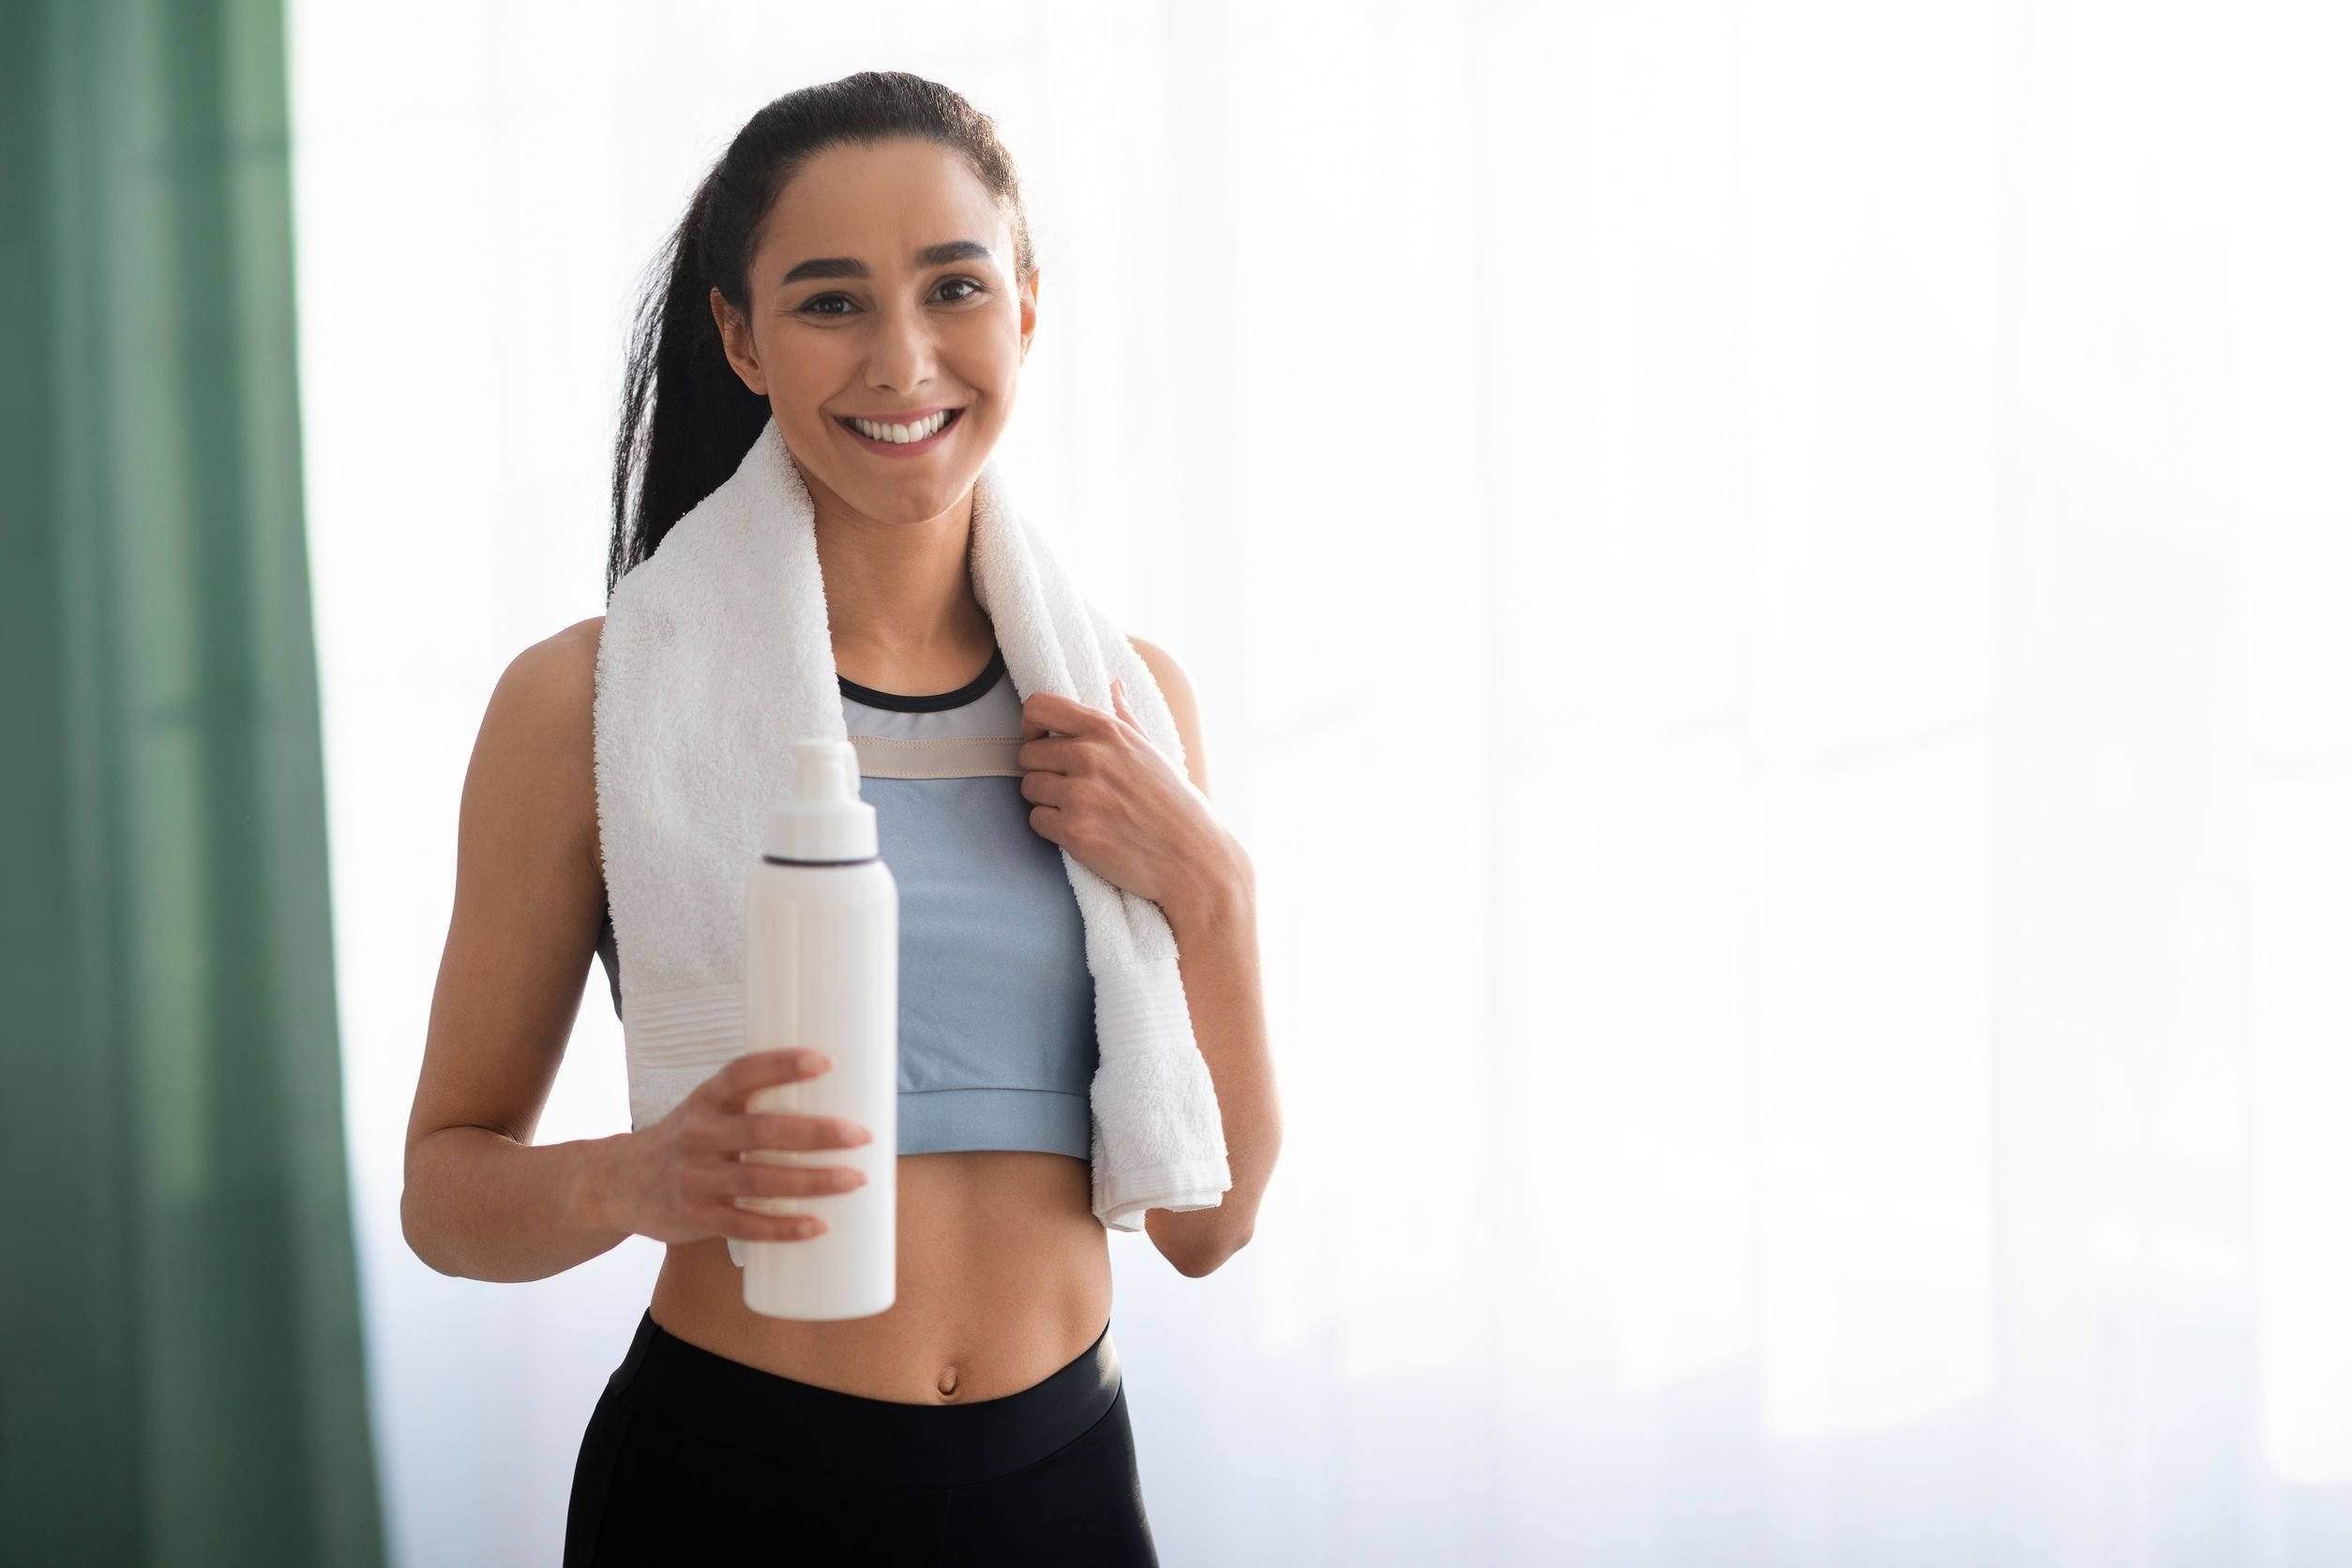 woman using towel on shoulders and holding water bottle after finishing workout routine